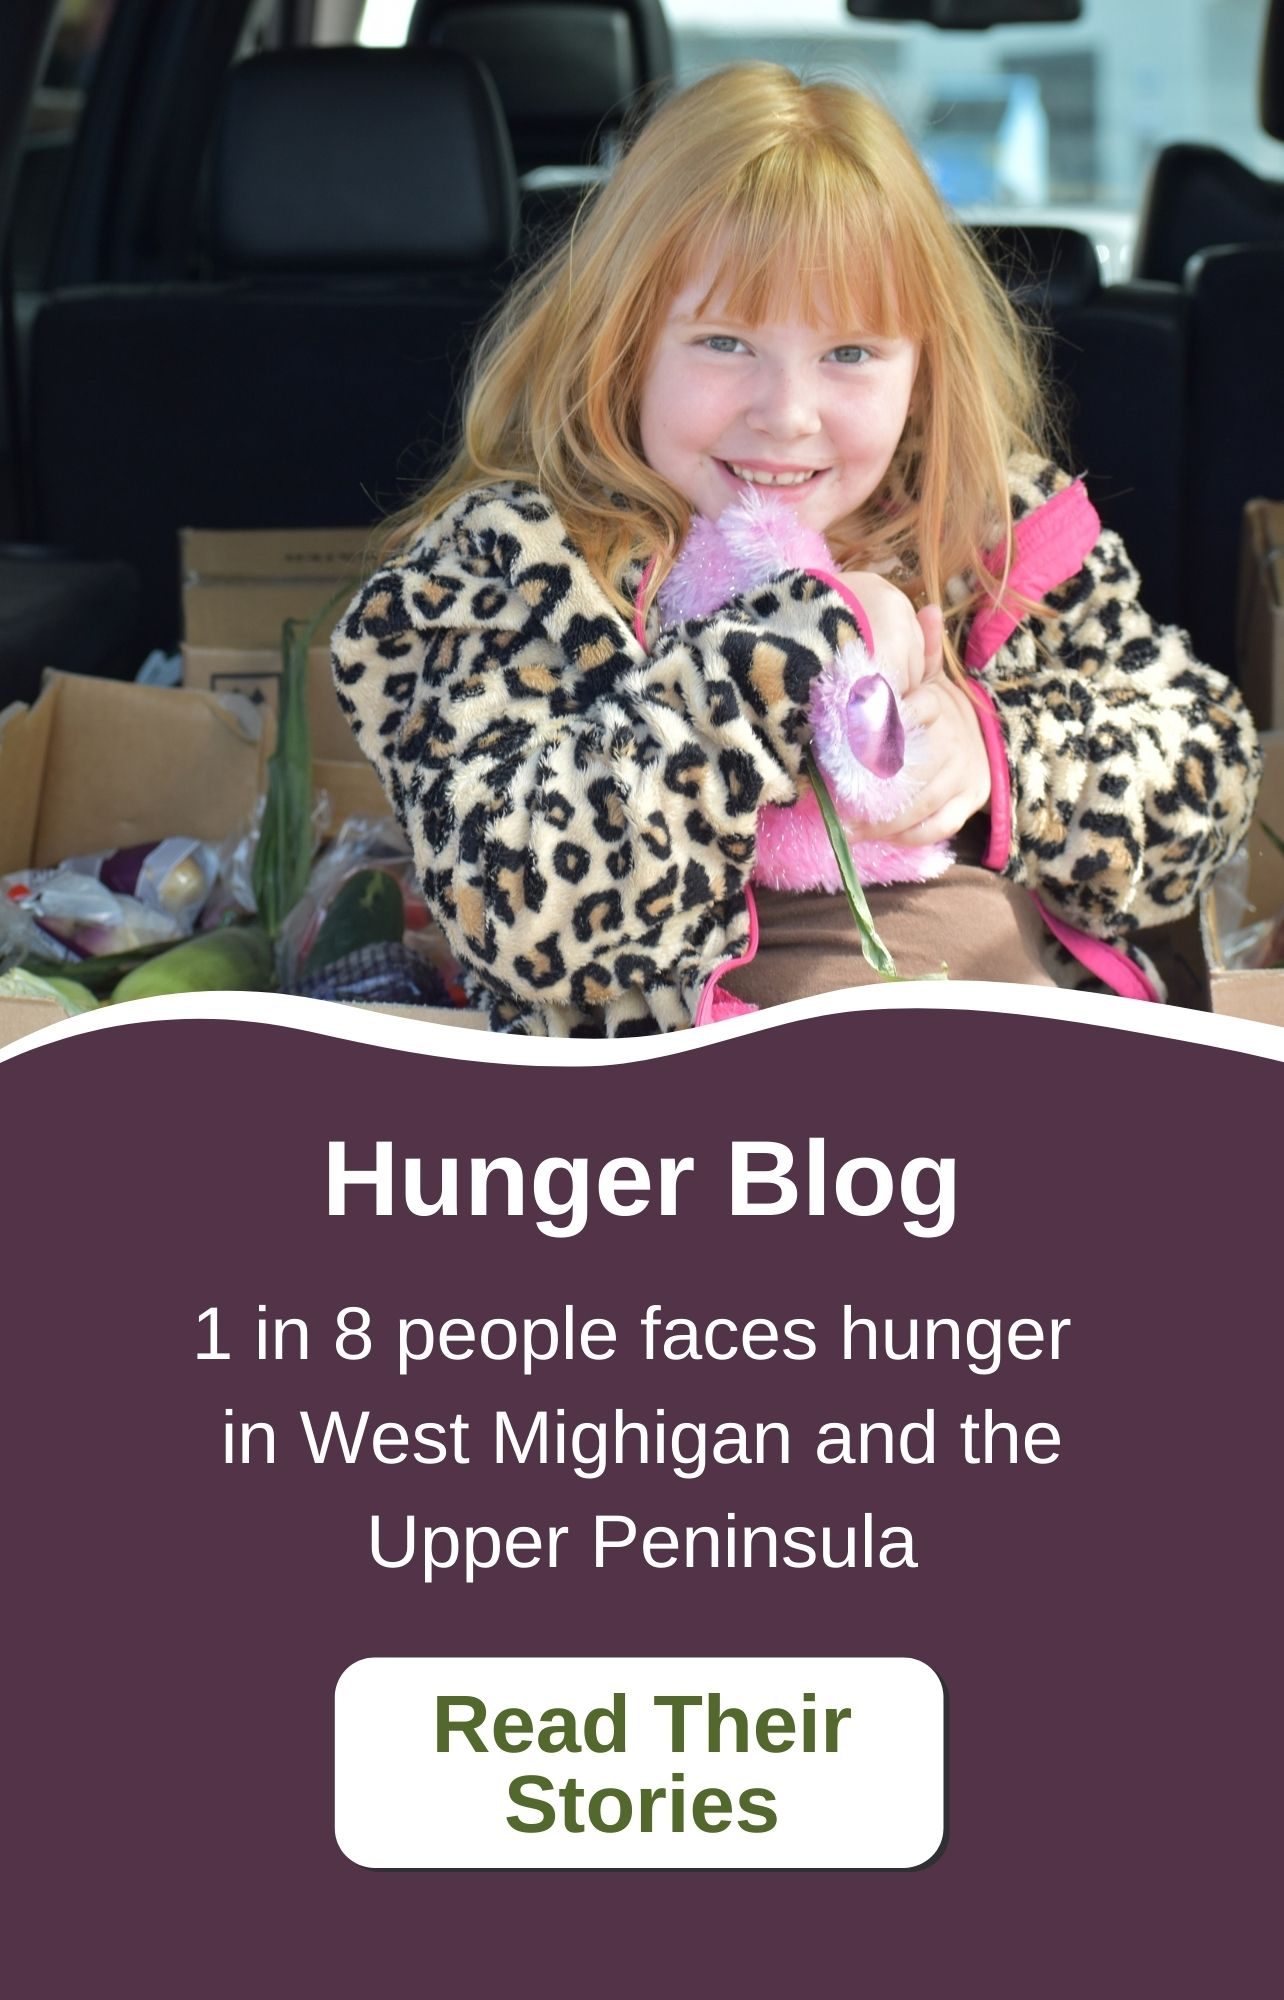 Hunger blog. 1 in 8 people in West Michigan and the Upper Peninsula faces hunger. Read their stories.